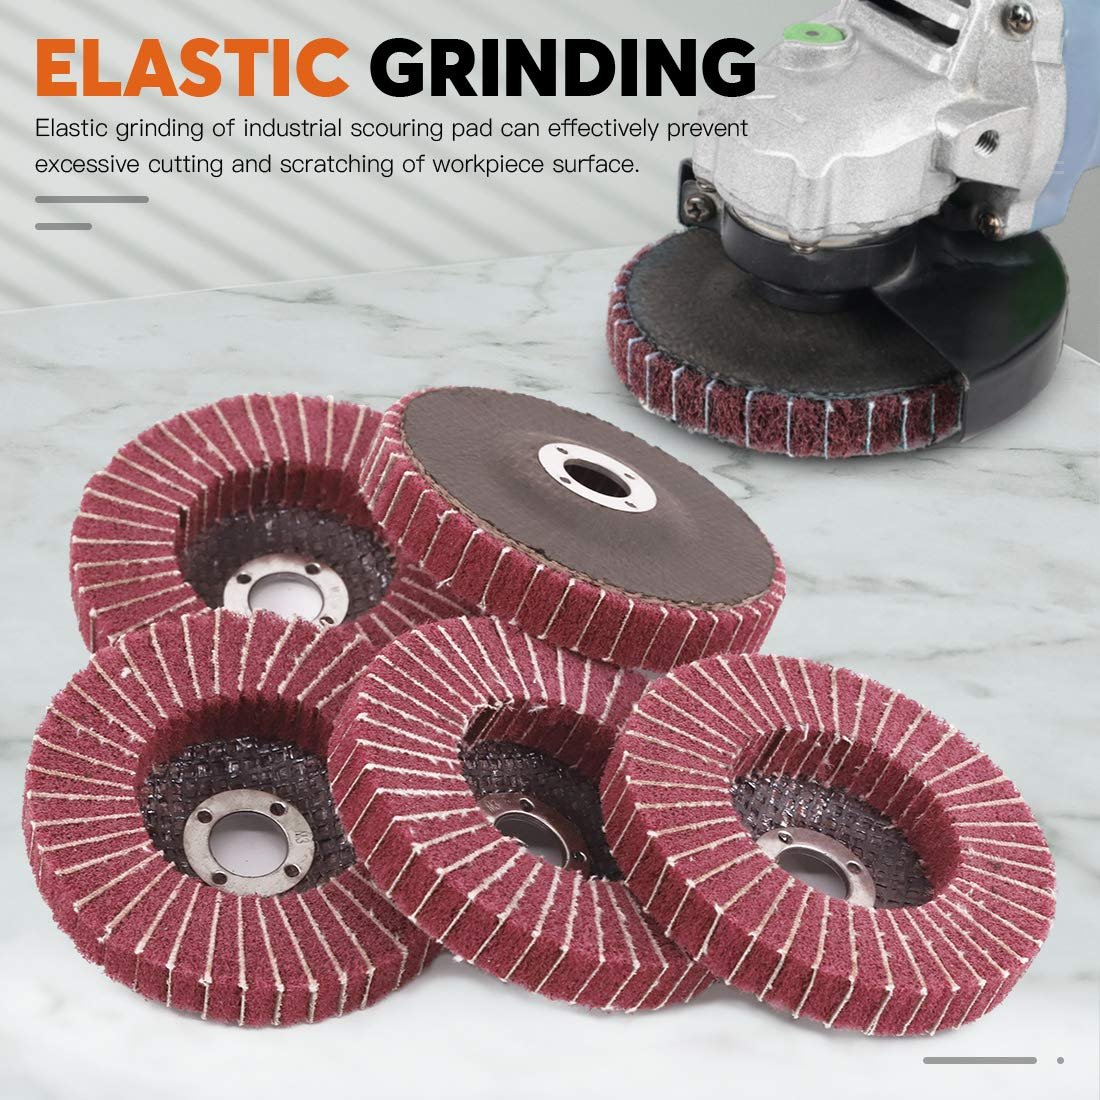 Nylon Polishing Discs for Marble Wood Metal 240 Grit Rustark 6 Pcs 4Nylon Fiber Flap Disc Abrasive Flap Wheel Scouring Pad Grinding Wheels for Angle Grinder Sanding Buffing Pads